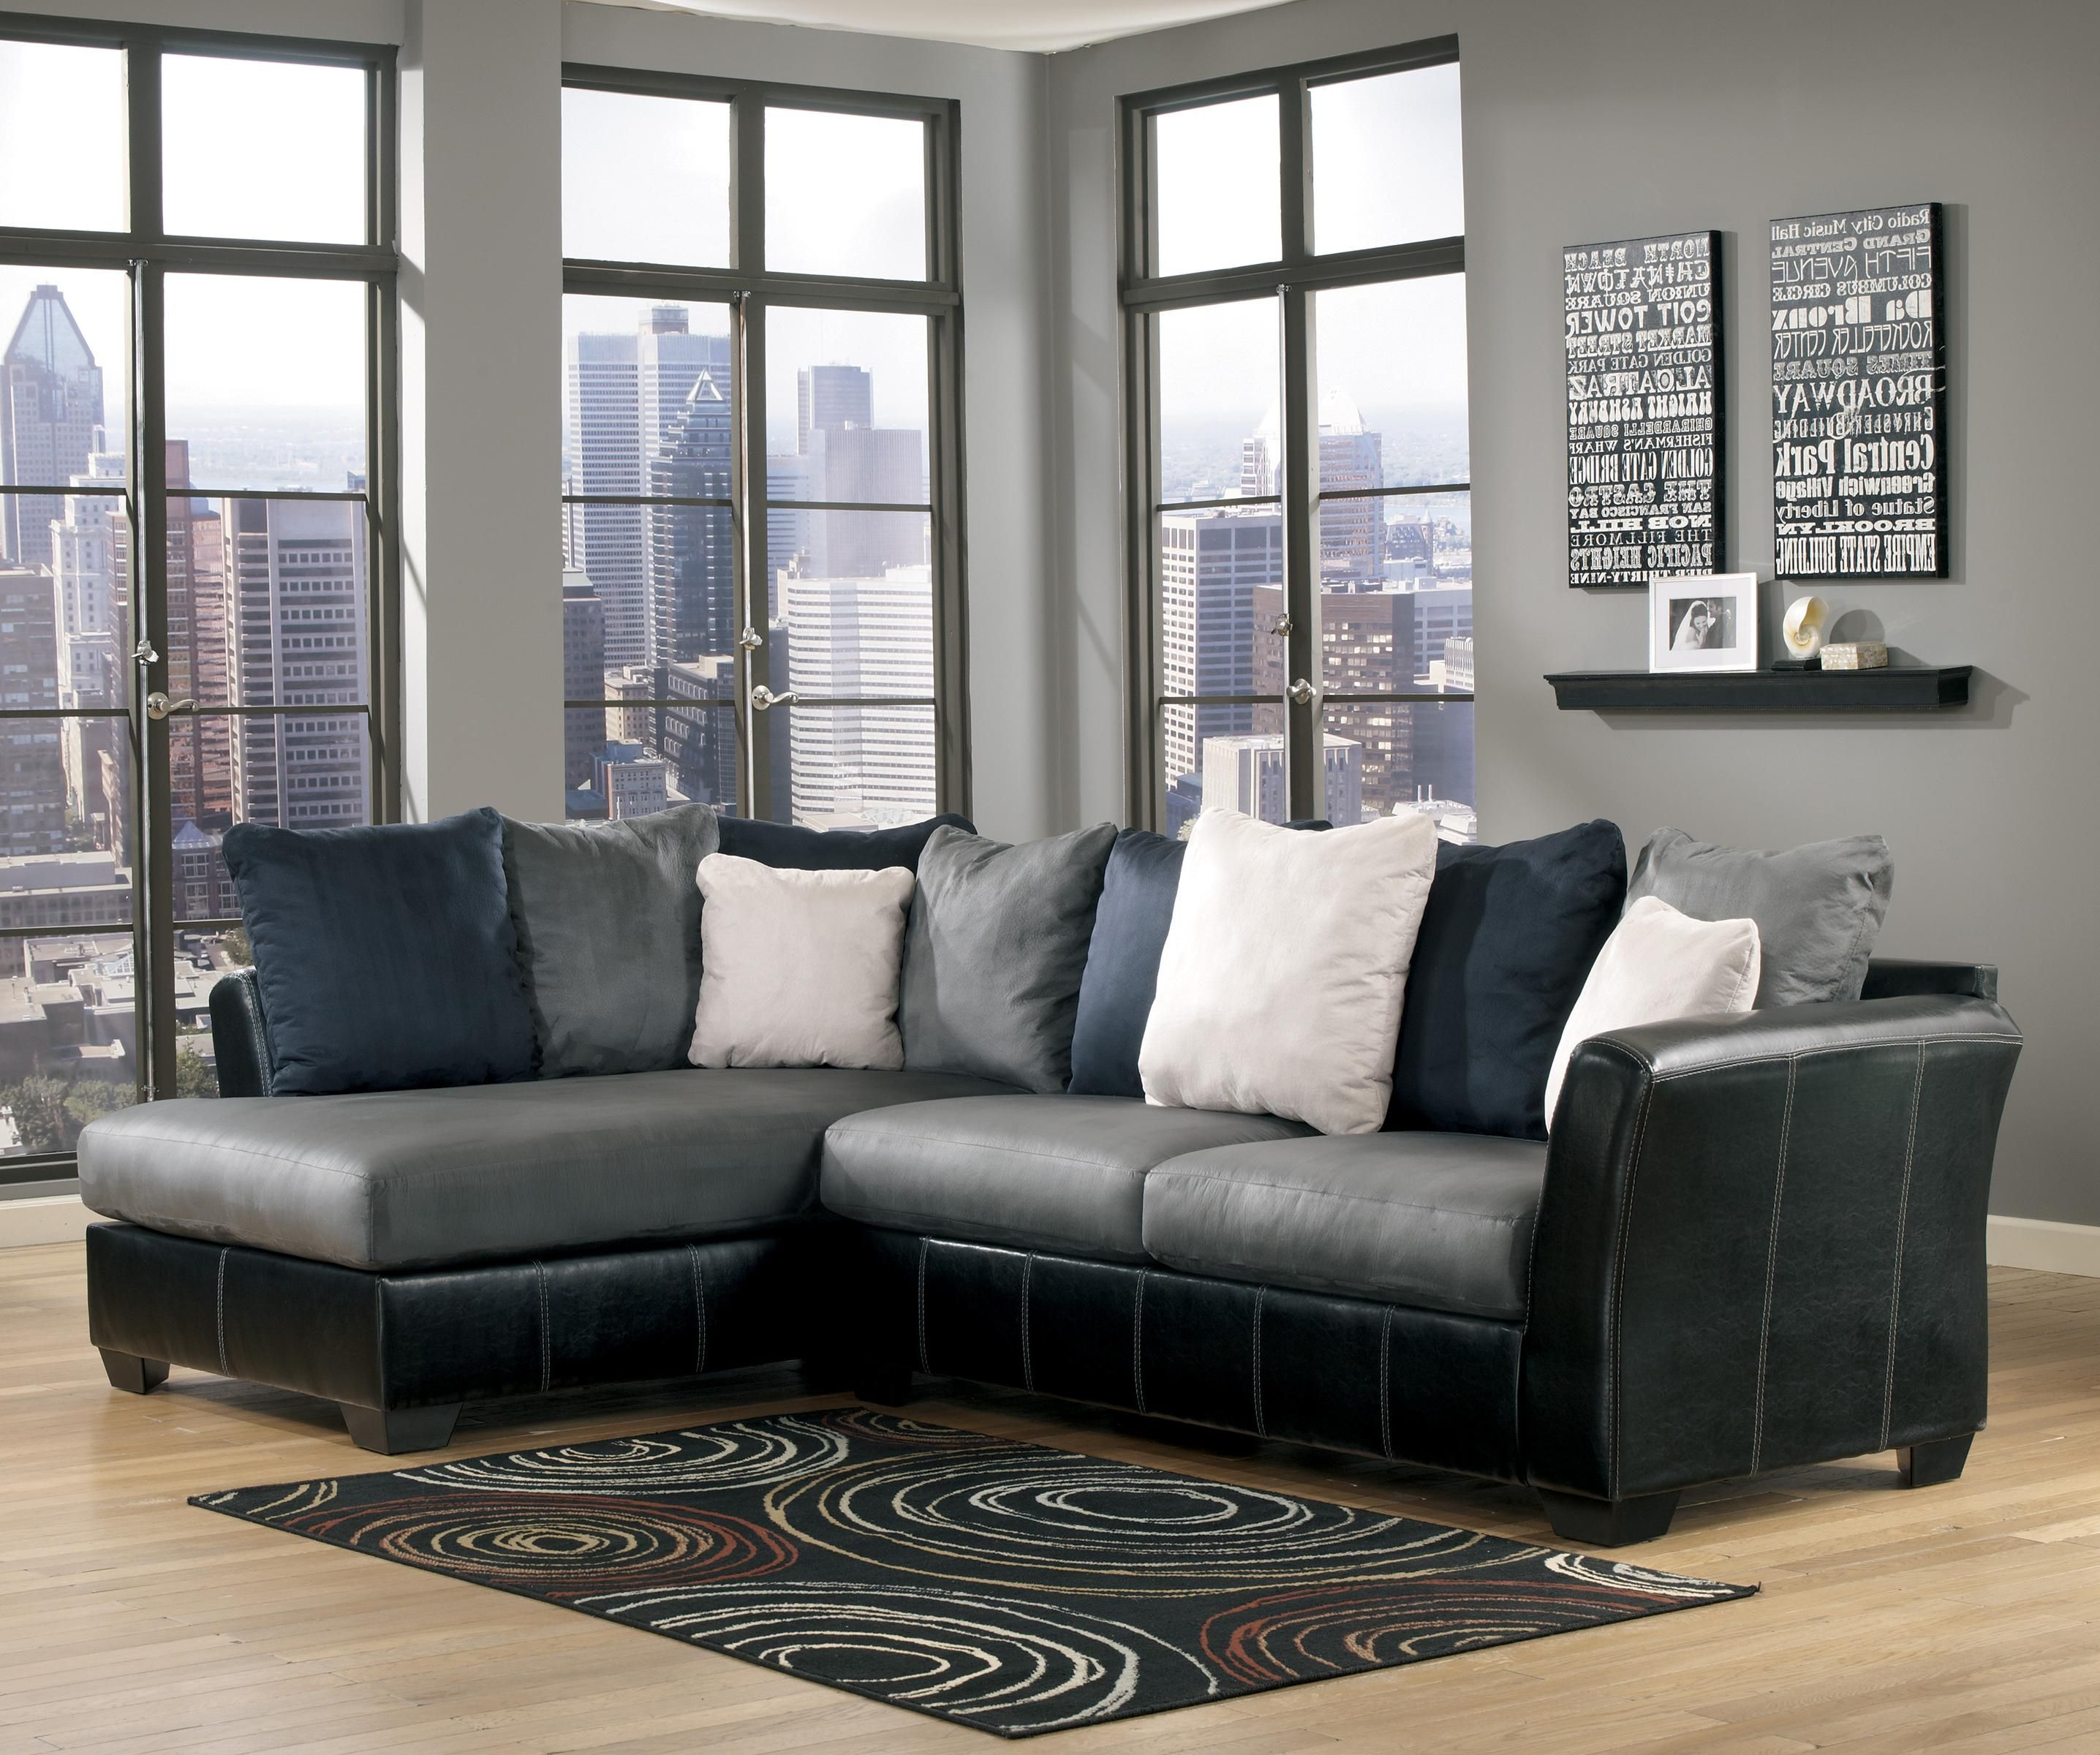 Masoli Cobblestone 2 Piece Sectional with Chaise by Benchcraft